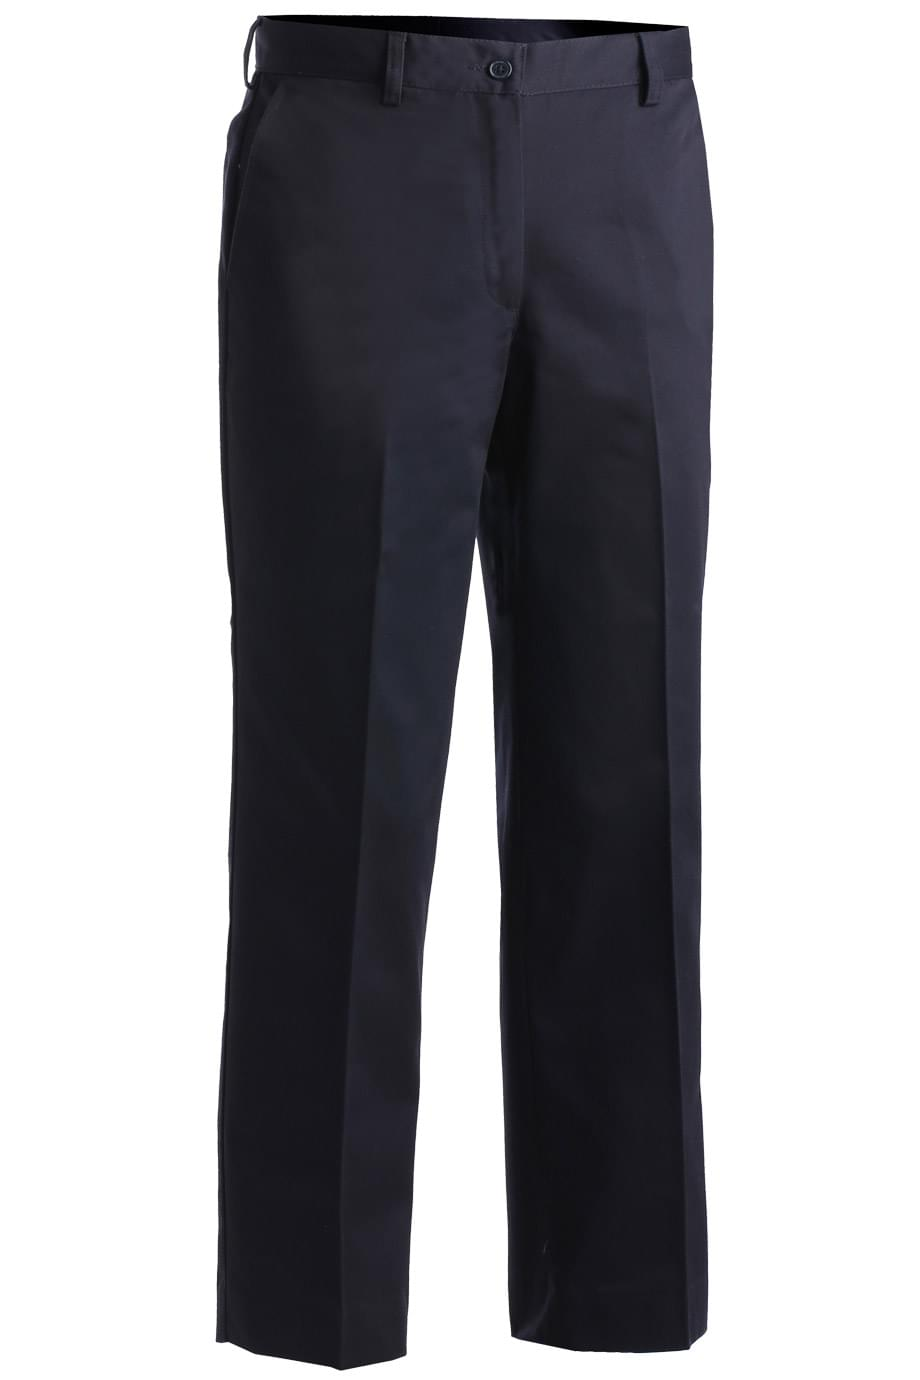 LADIES' EASY FIT CHINO FLAT FRONT PANT